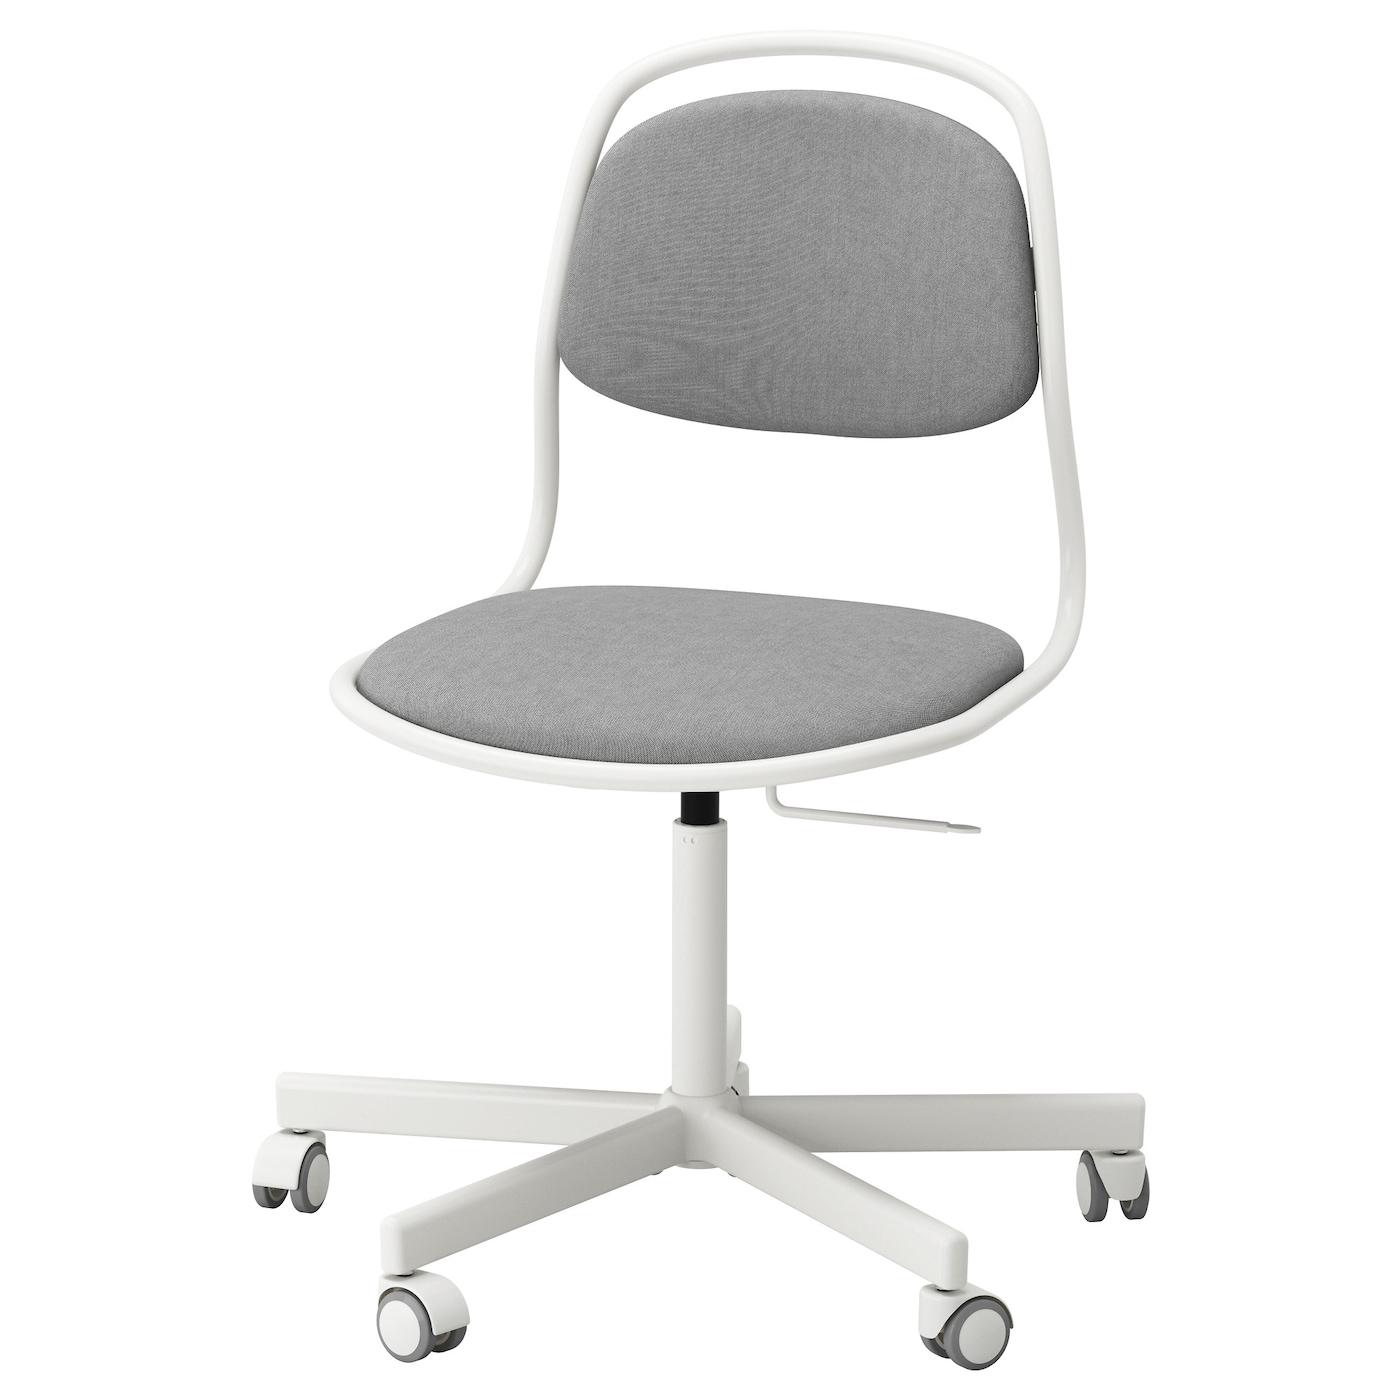 Office Chairs Office Seating IKEA